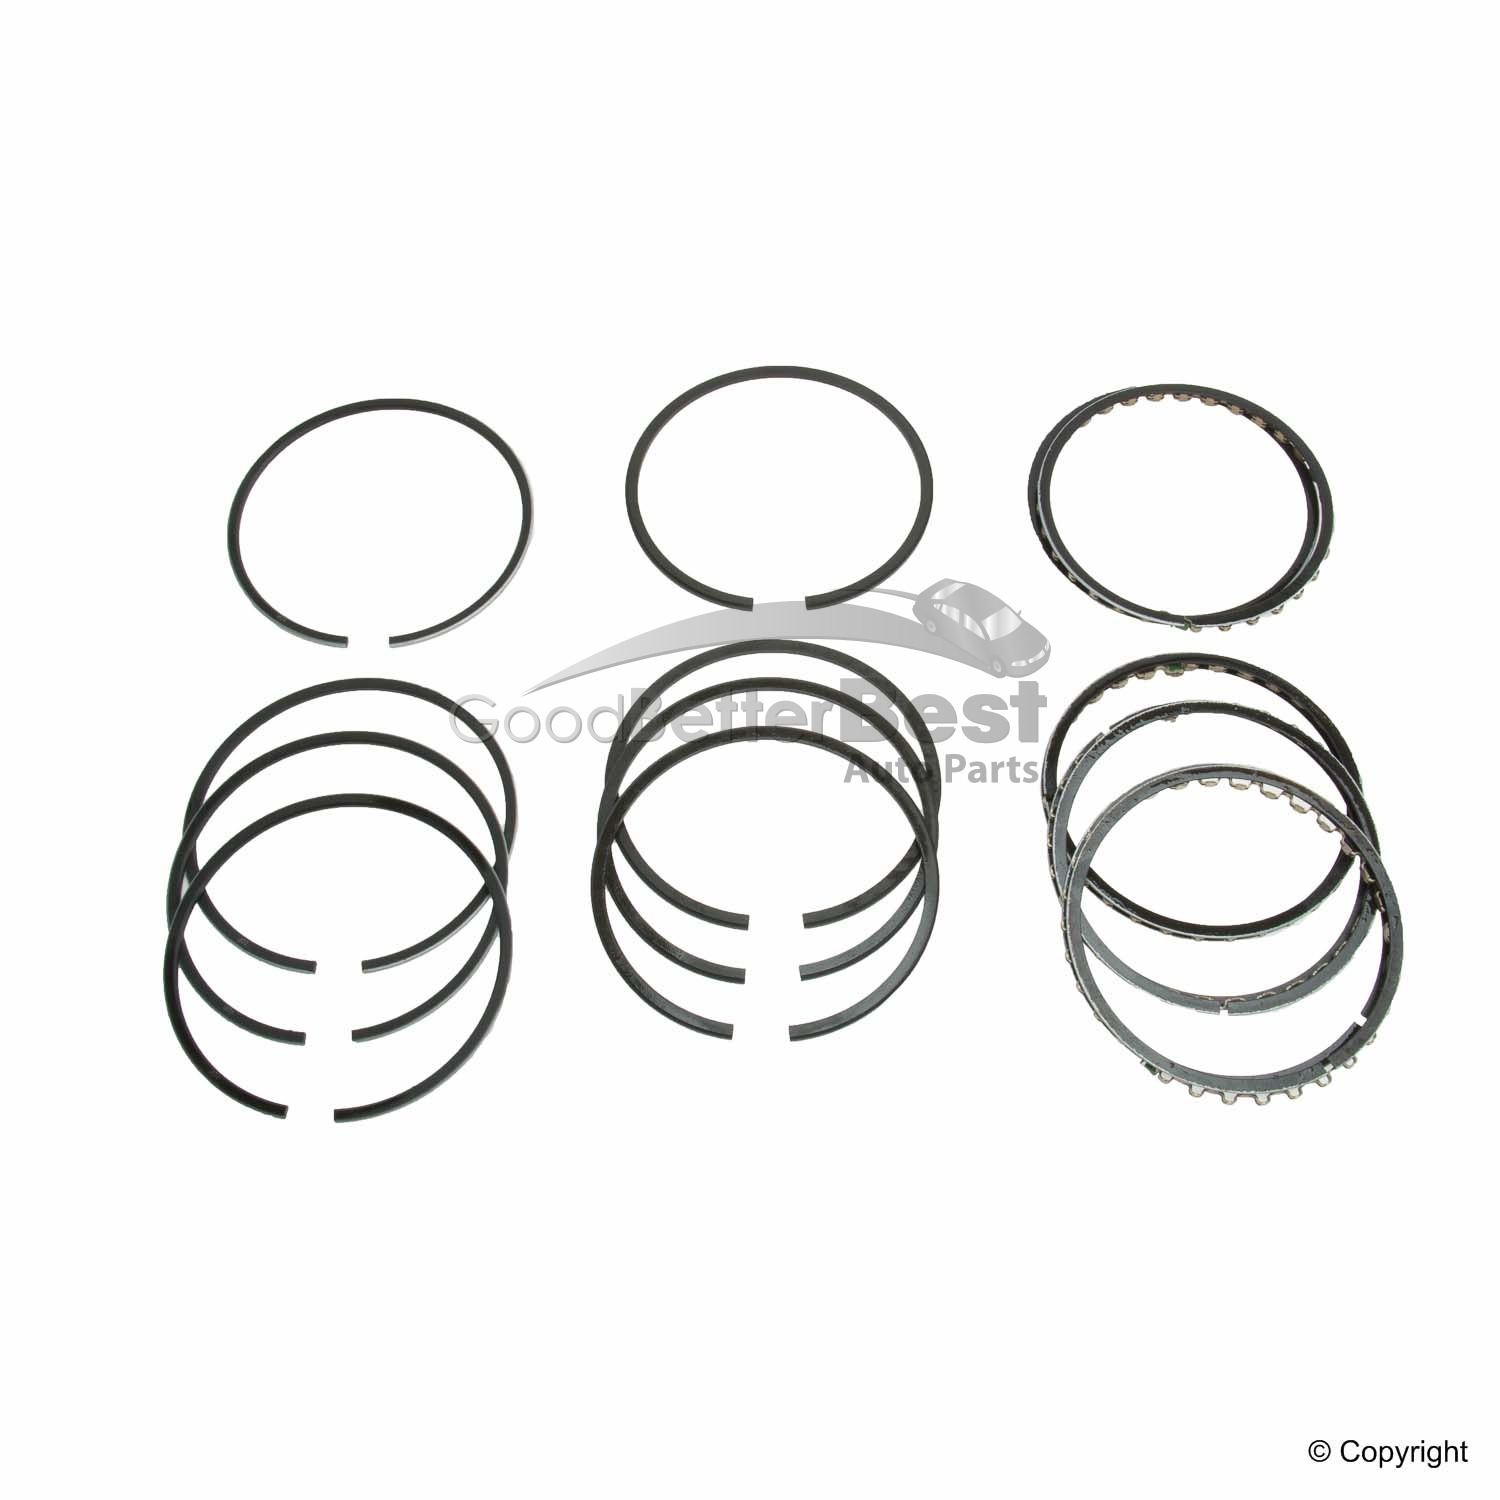 New Grant Engine Piston Ring Set C For Volvo 142 144